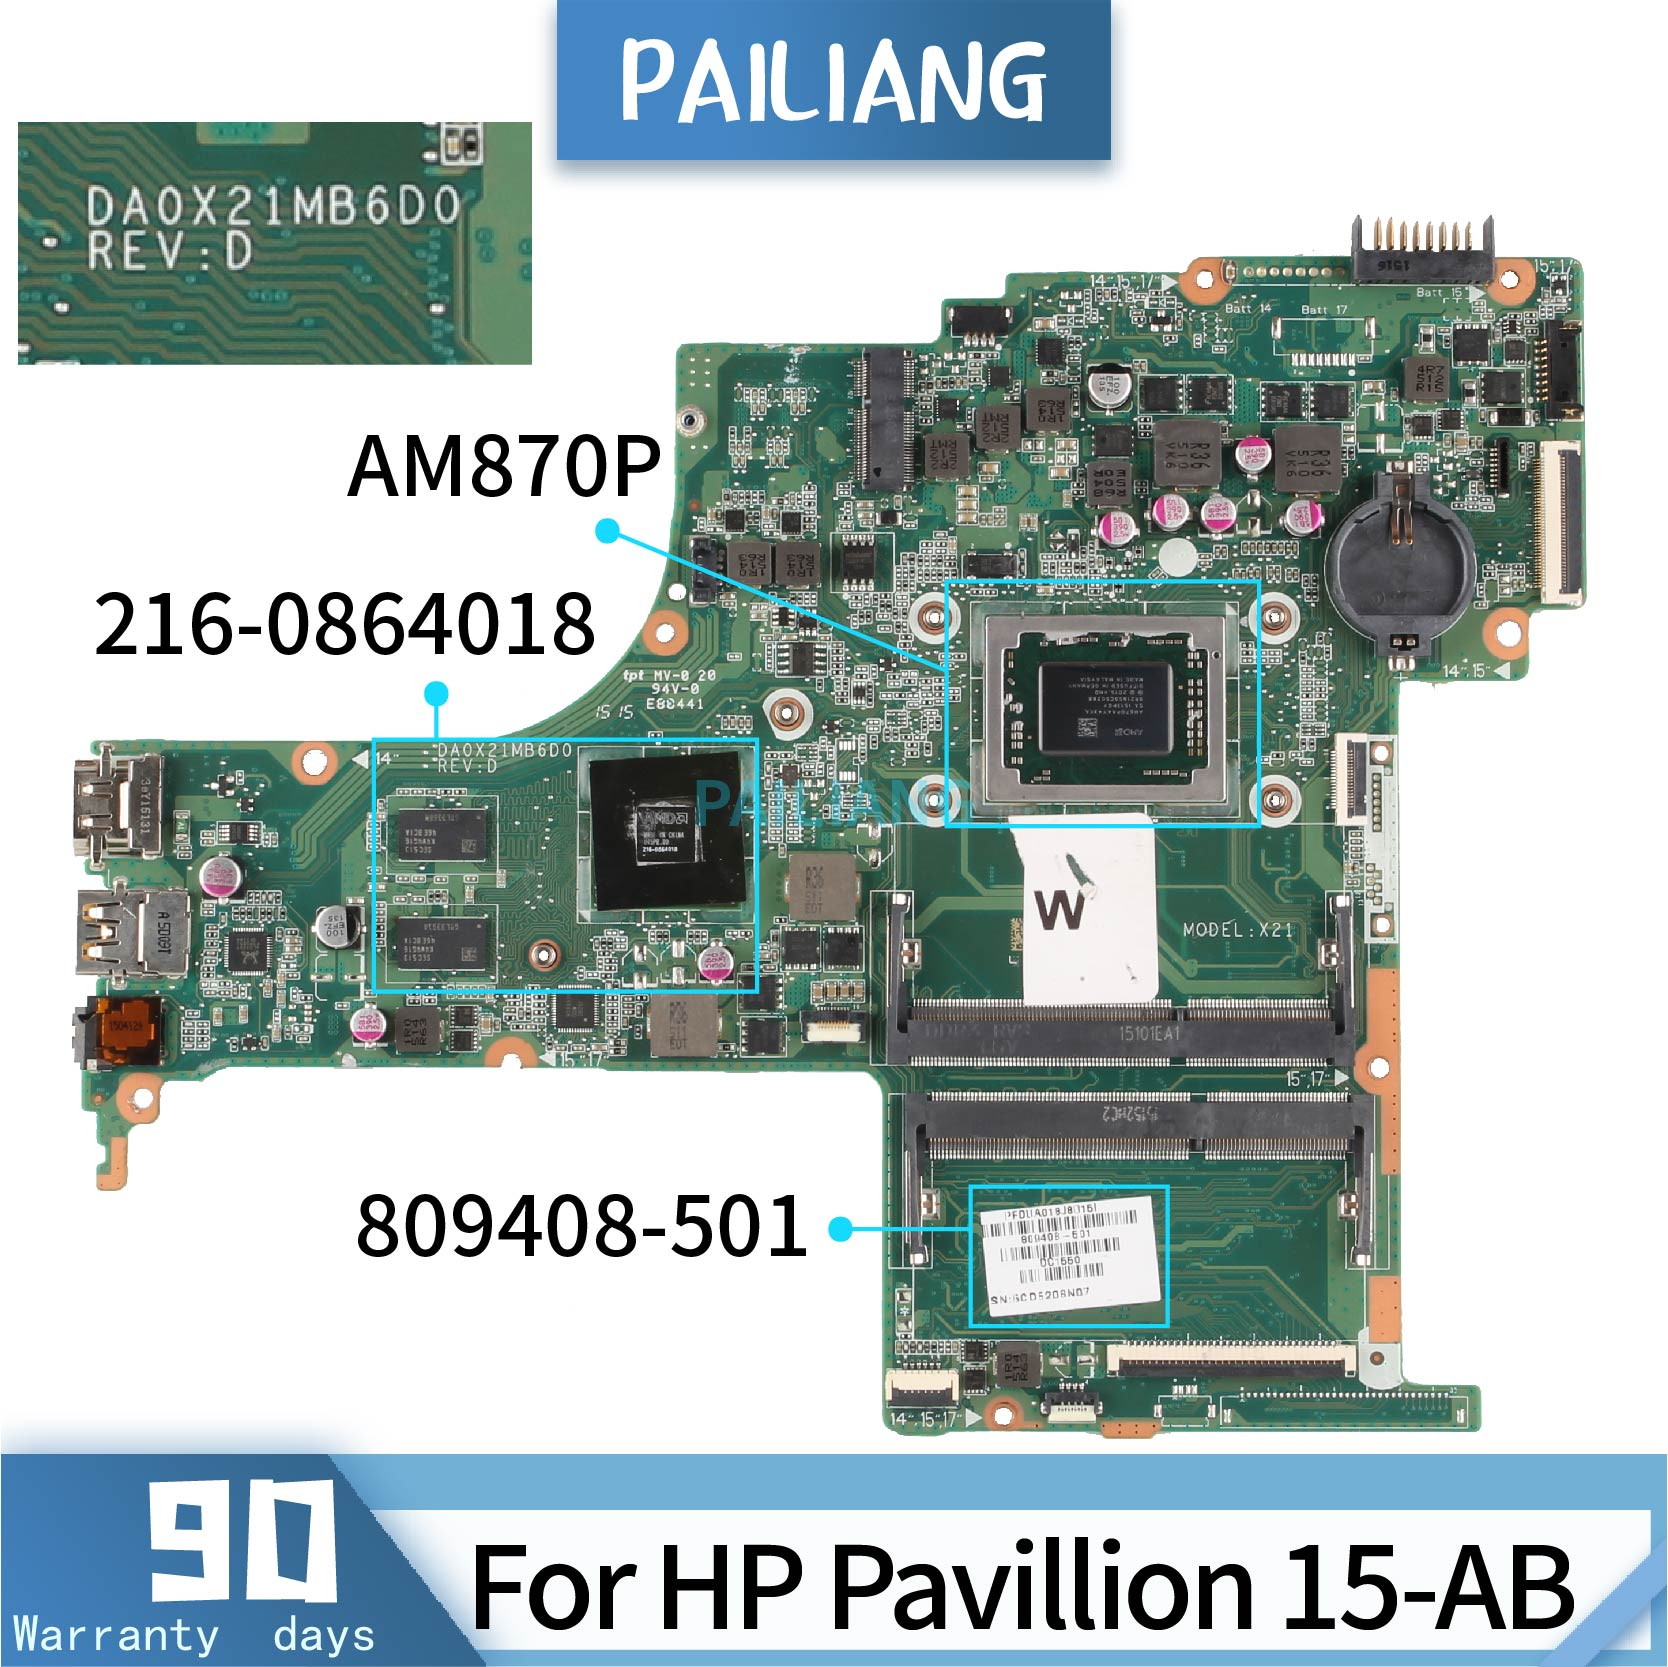 PAILIANG Laptop Motherboard For HP Pavillion 15-AB Core AM870P 216-0864018 Mainboard DA0X21MB6D0 809408-501 TESTED DDR3